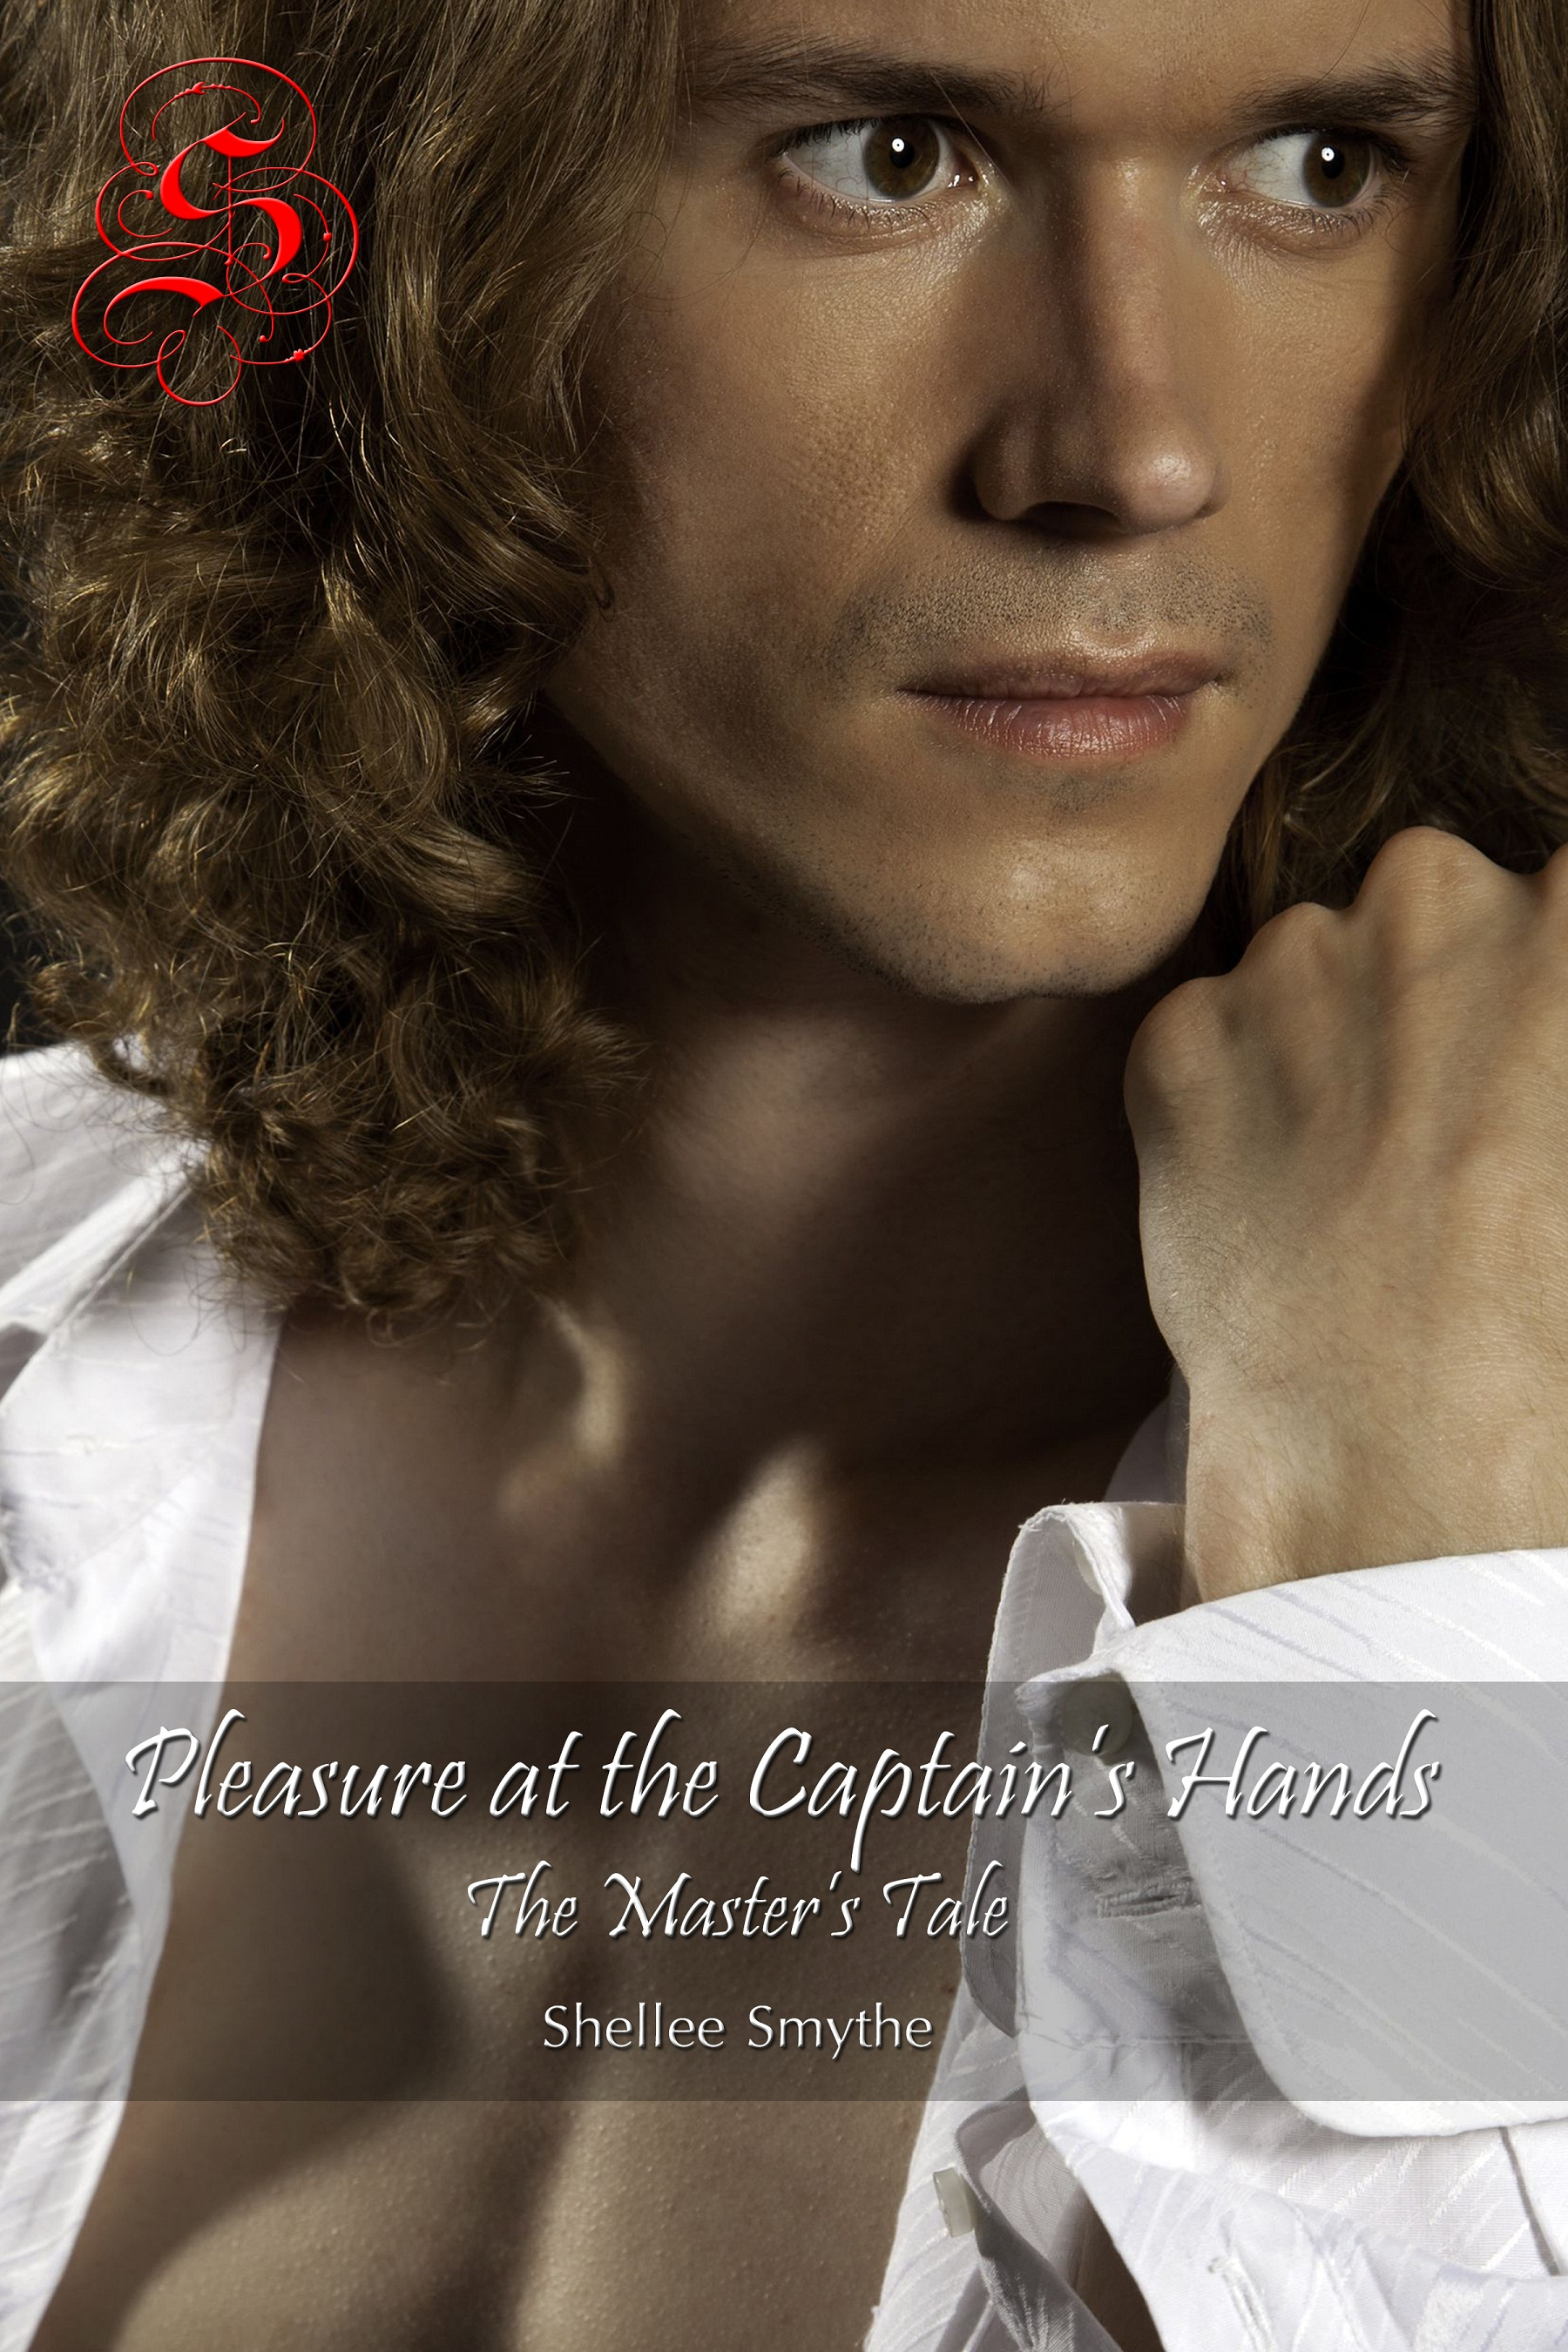 Shellee Smythe - Pleasure at the Captain's Hands: The Master's Tale